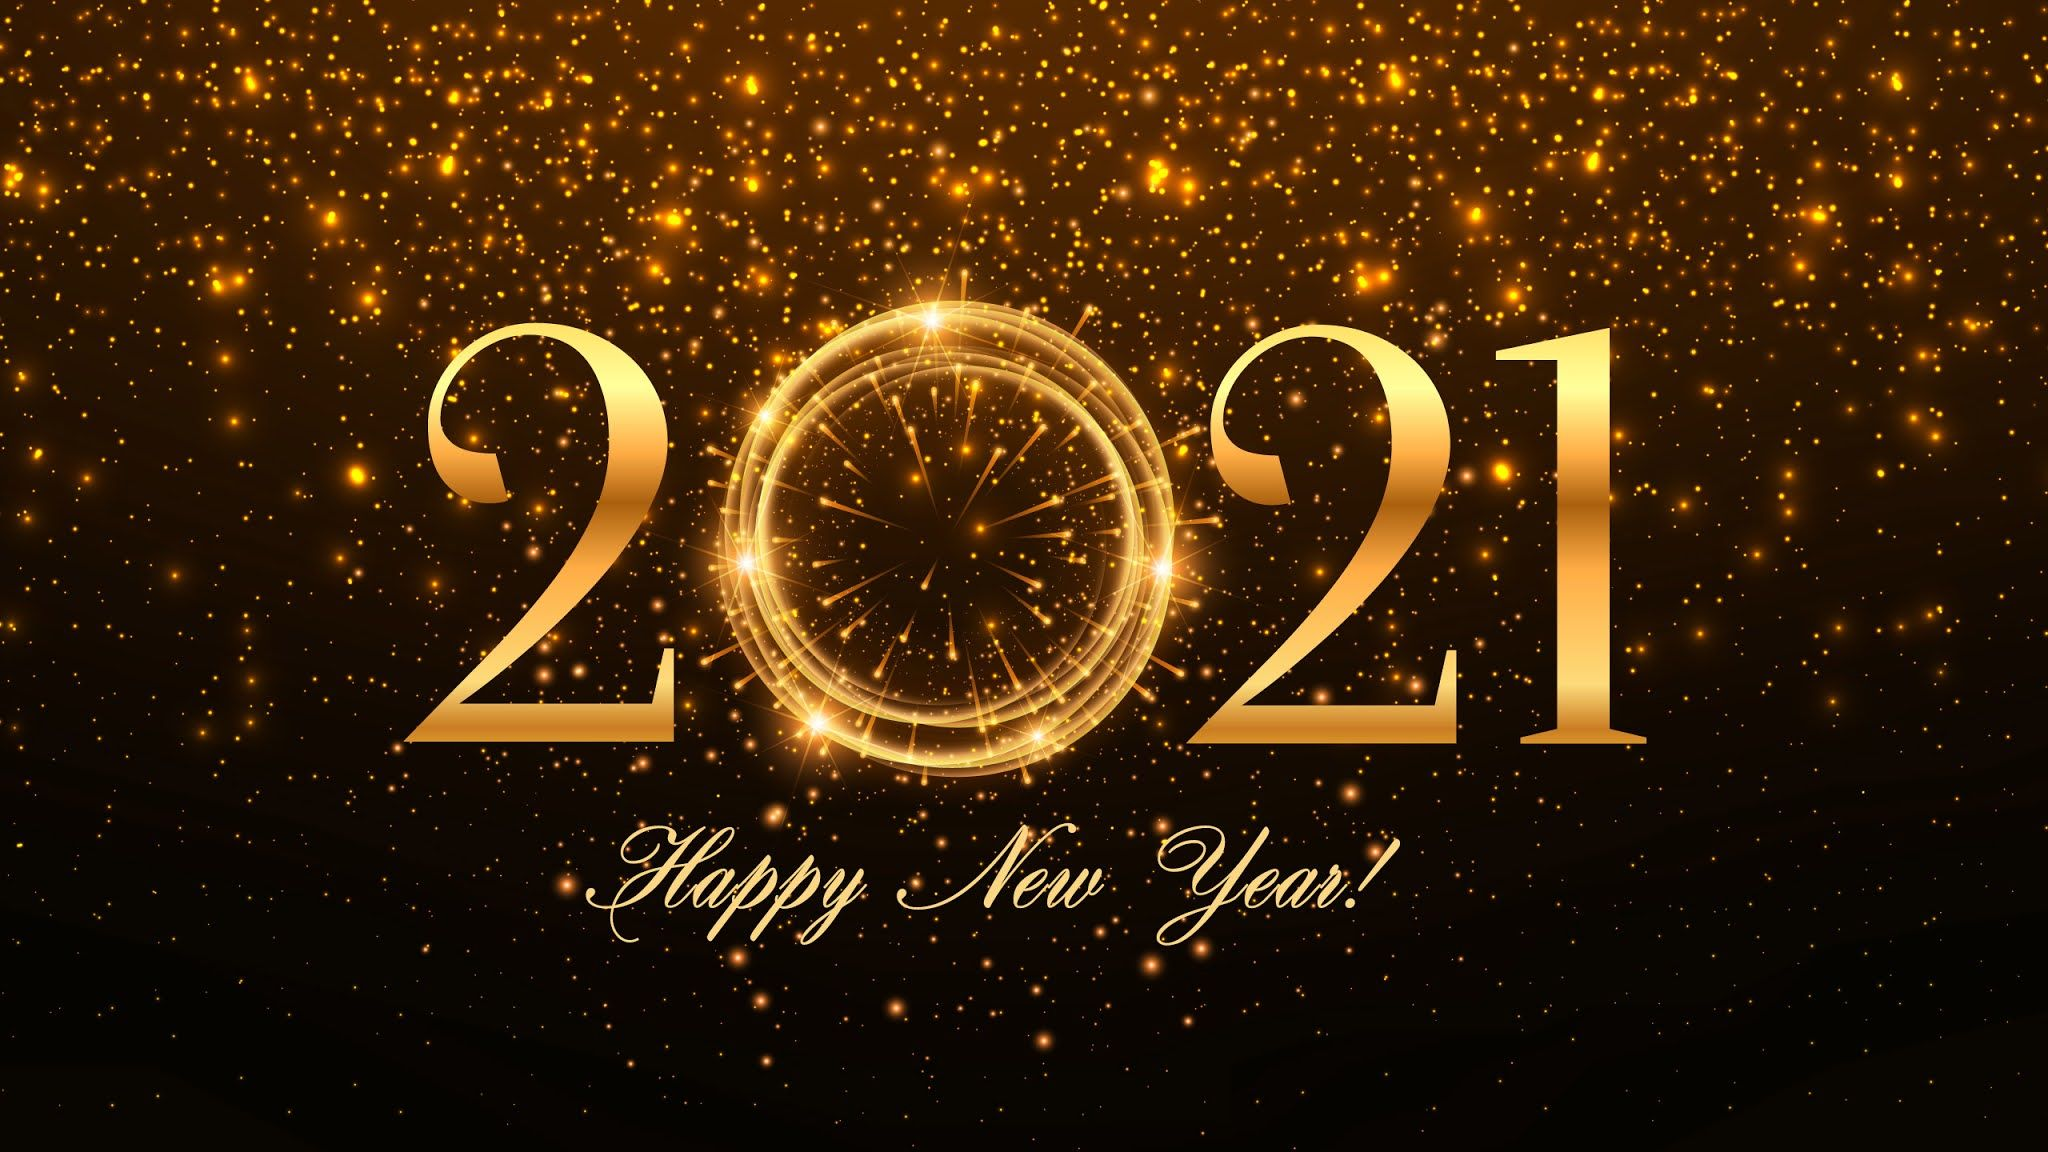 Happy New Year 2021 Wallpapers   Top Happy New Year 2021 2048x1152